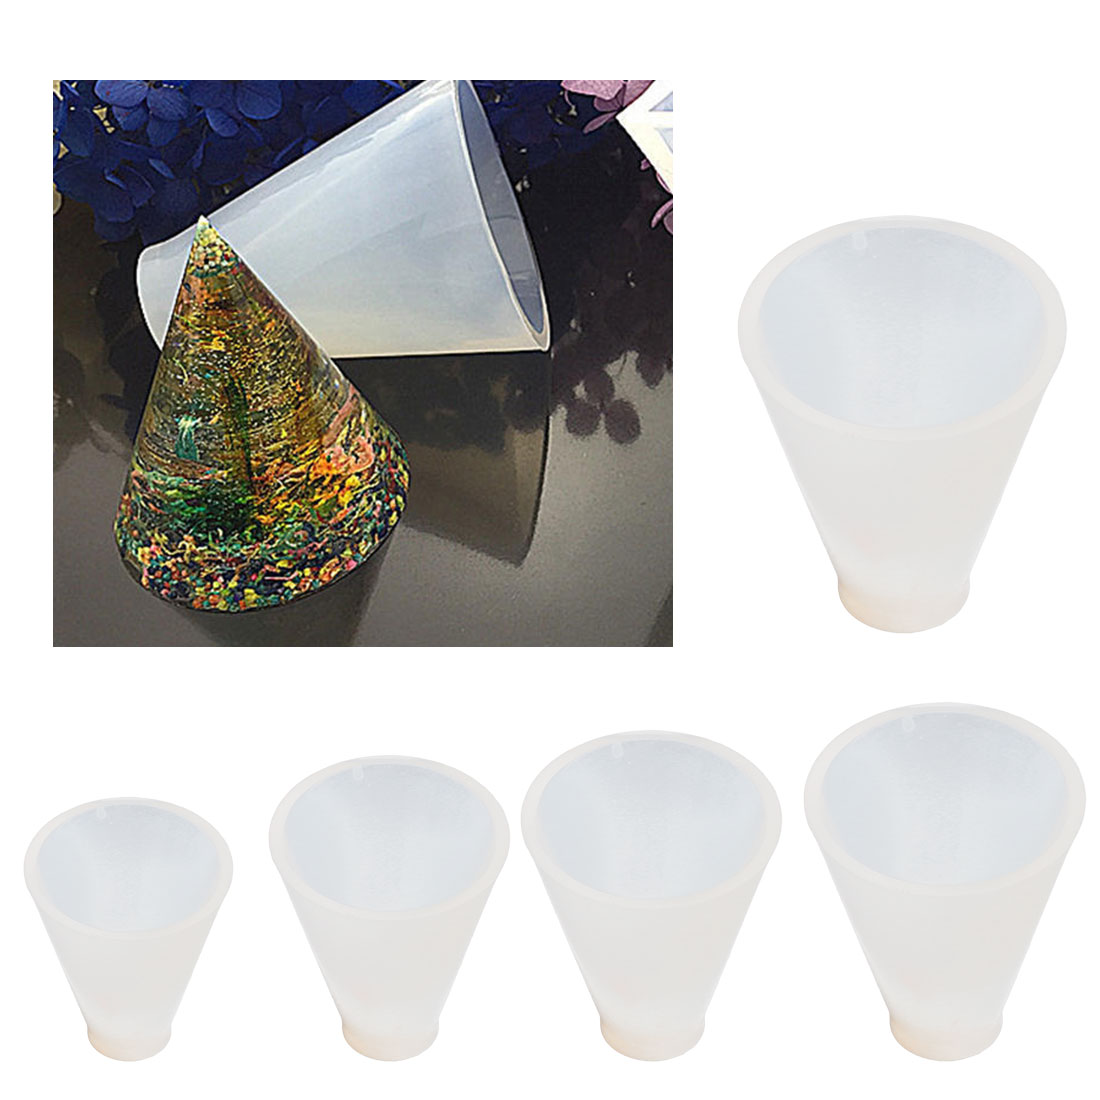 Triangular Pyramid Jewelry Making Tools Mold Pendant Silicone Resin Craft DIY Silicone Mold For Resin